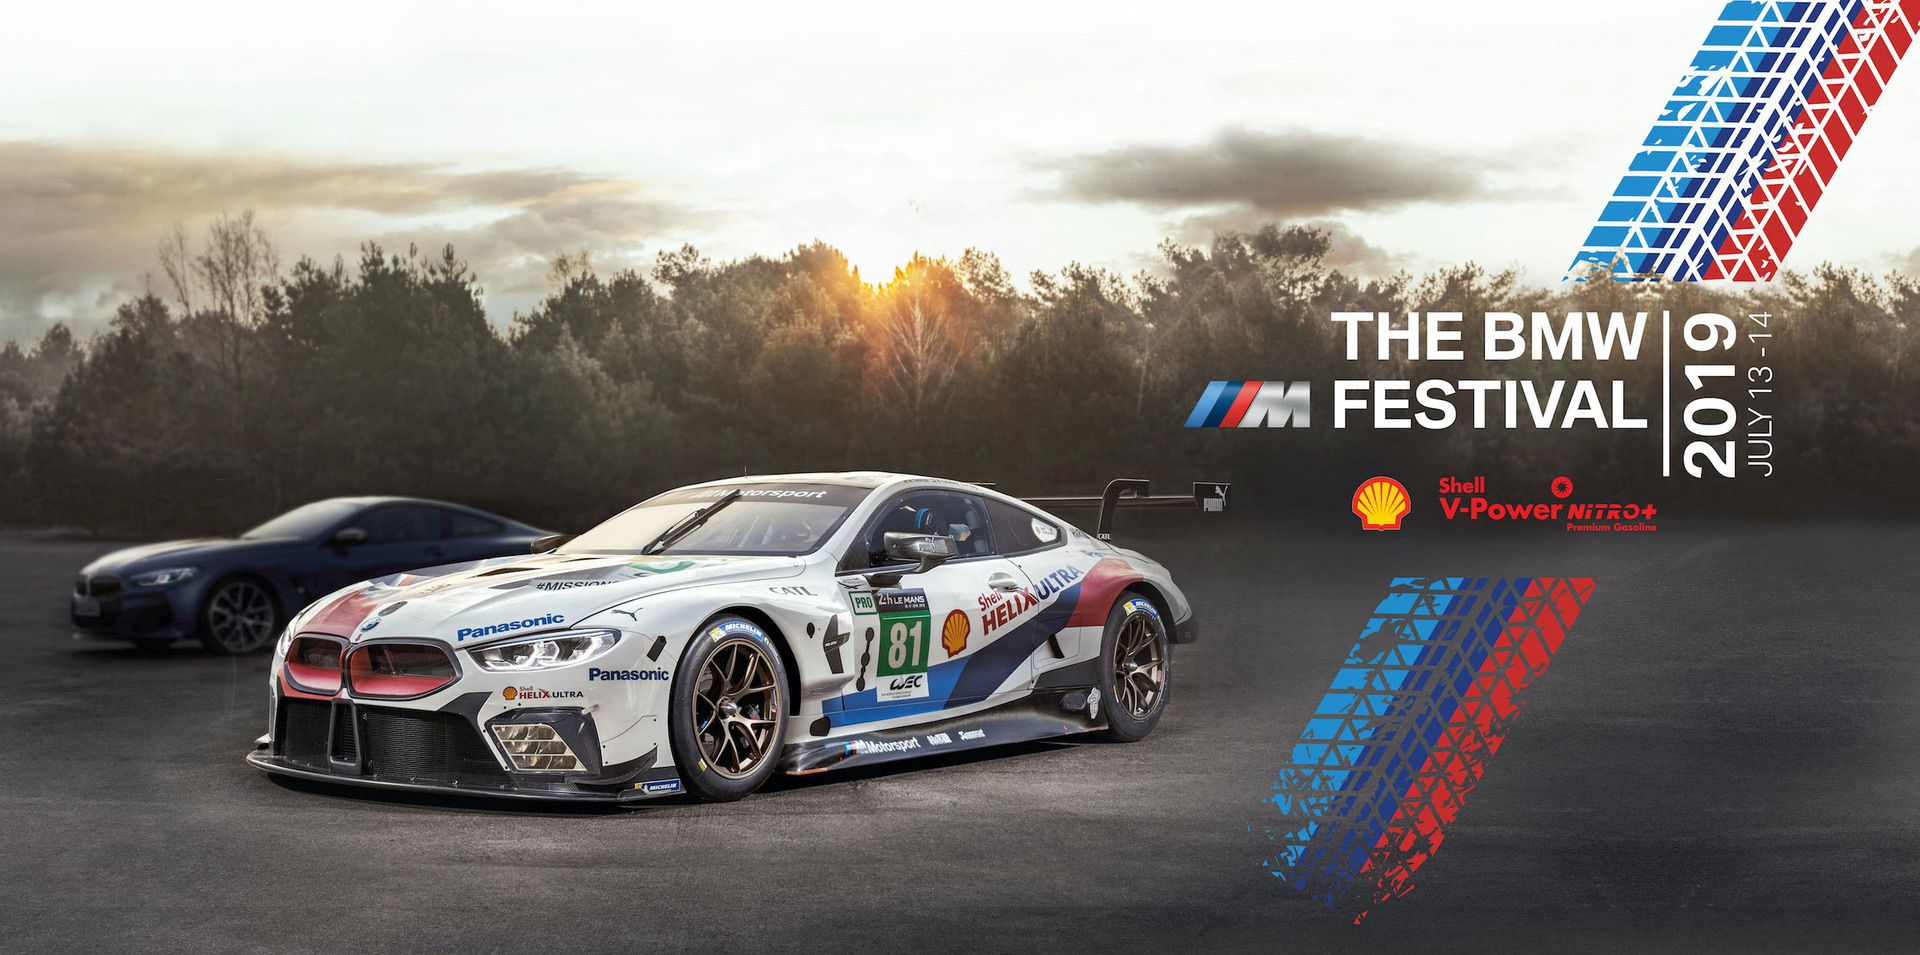 The Bmw M Festival Is Coming To Canada July 13 14 2019